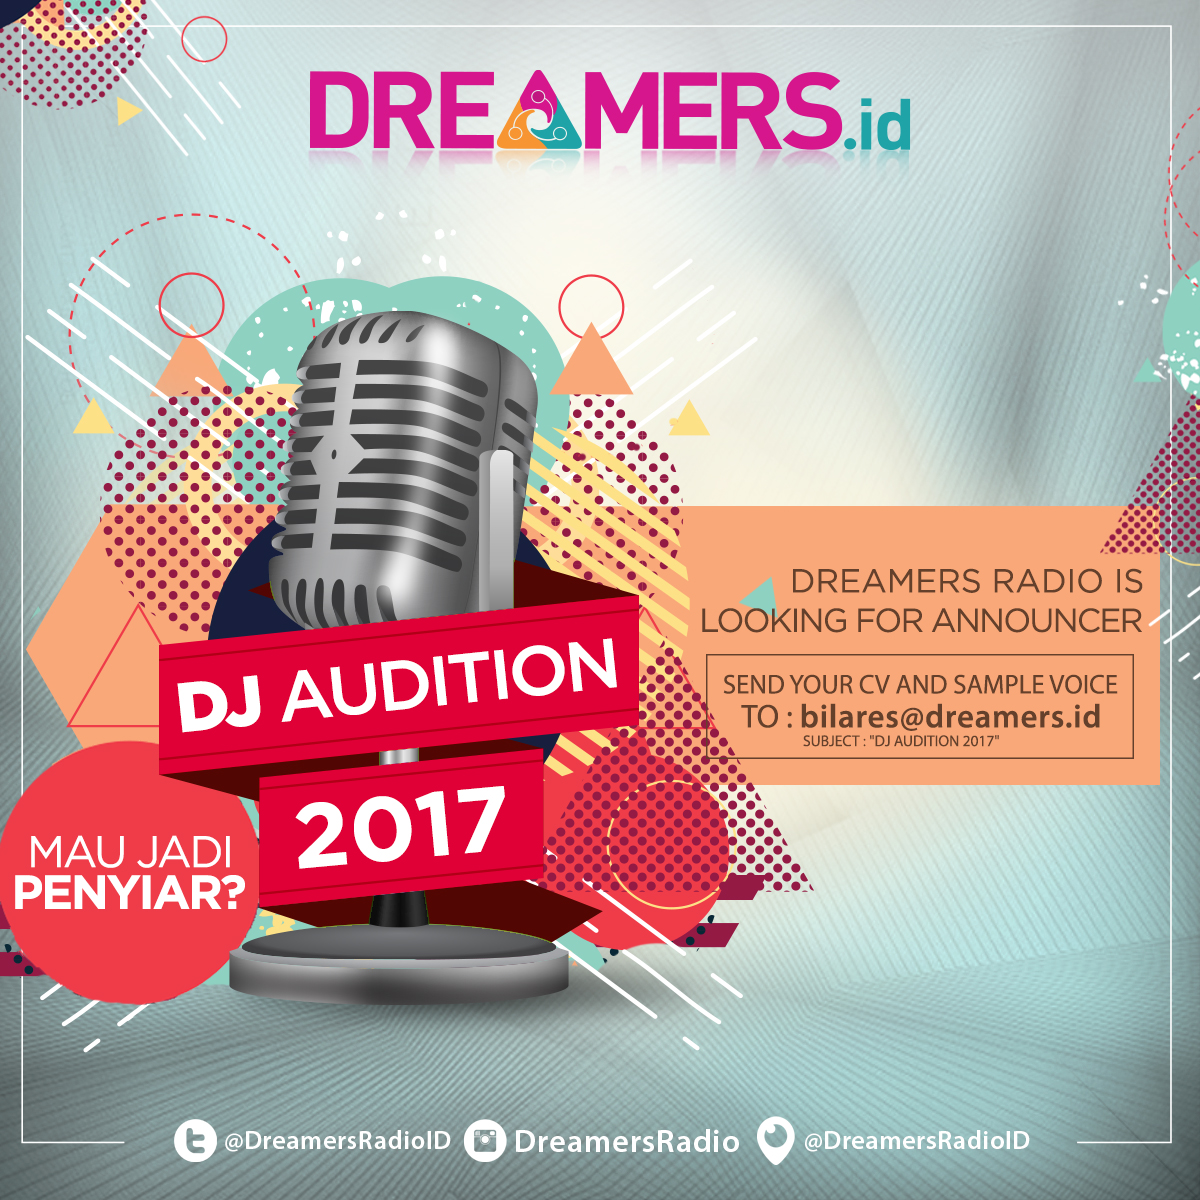 DREAMERS RADIO - DJ AUDITION 2017 (Open Recruitment)